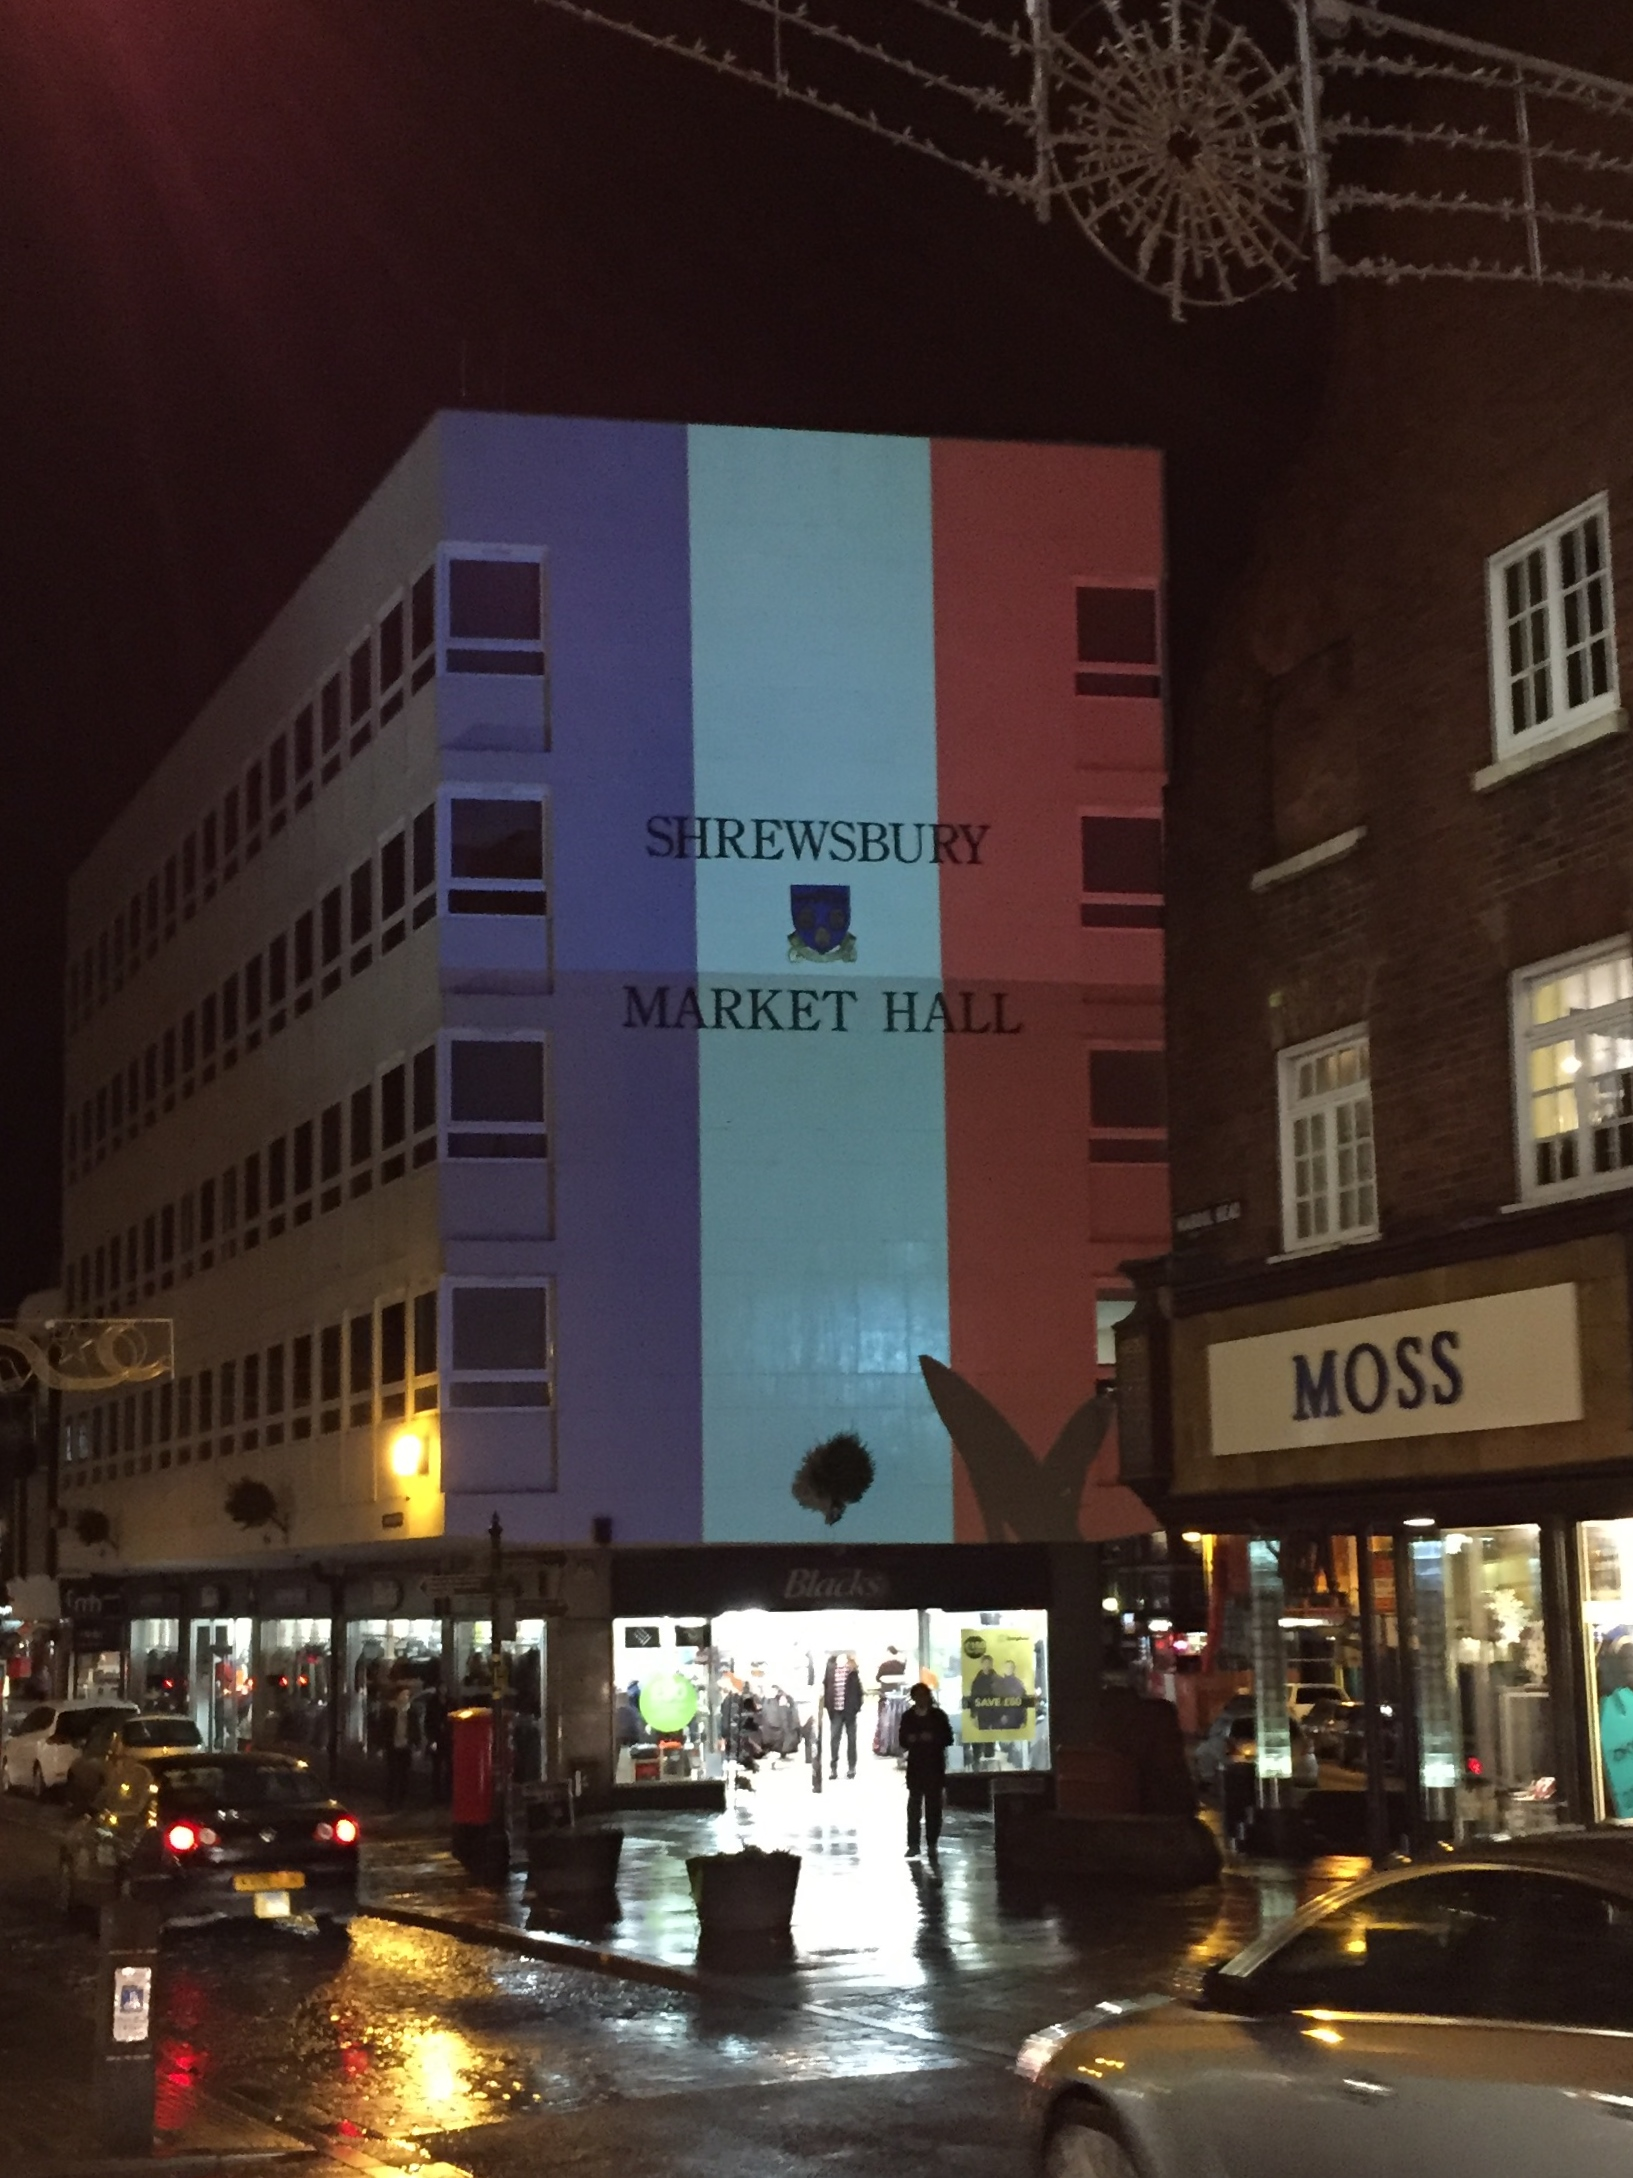 Shrewsbury Market Hall illuminated in solidarity with Paris following November attached. Tricolore tribute